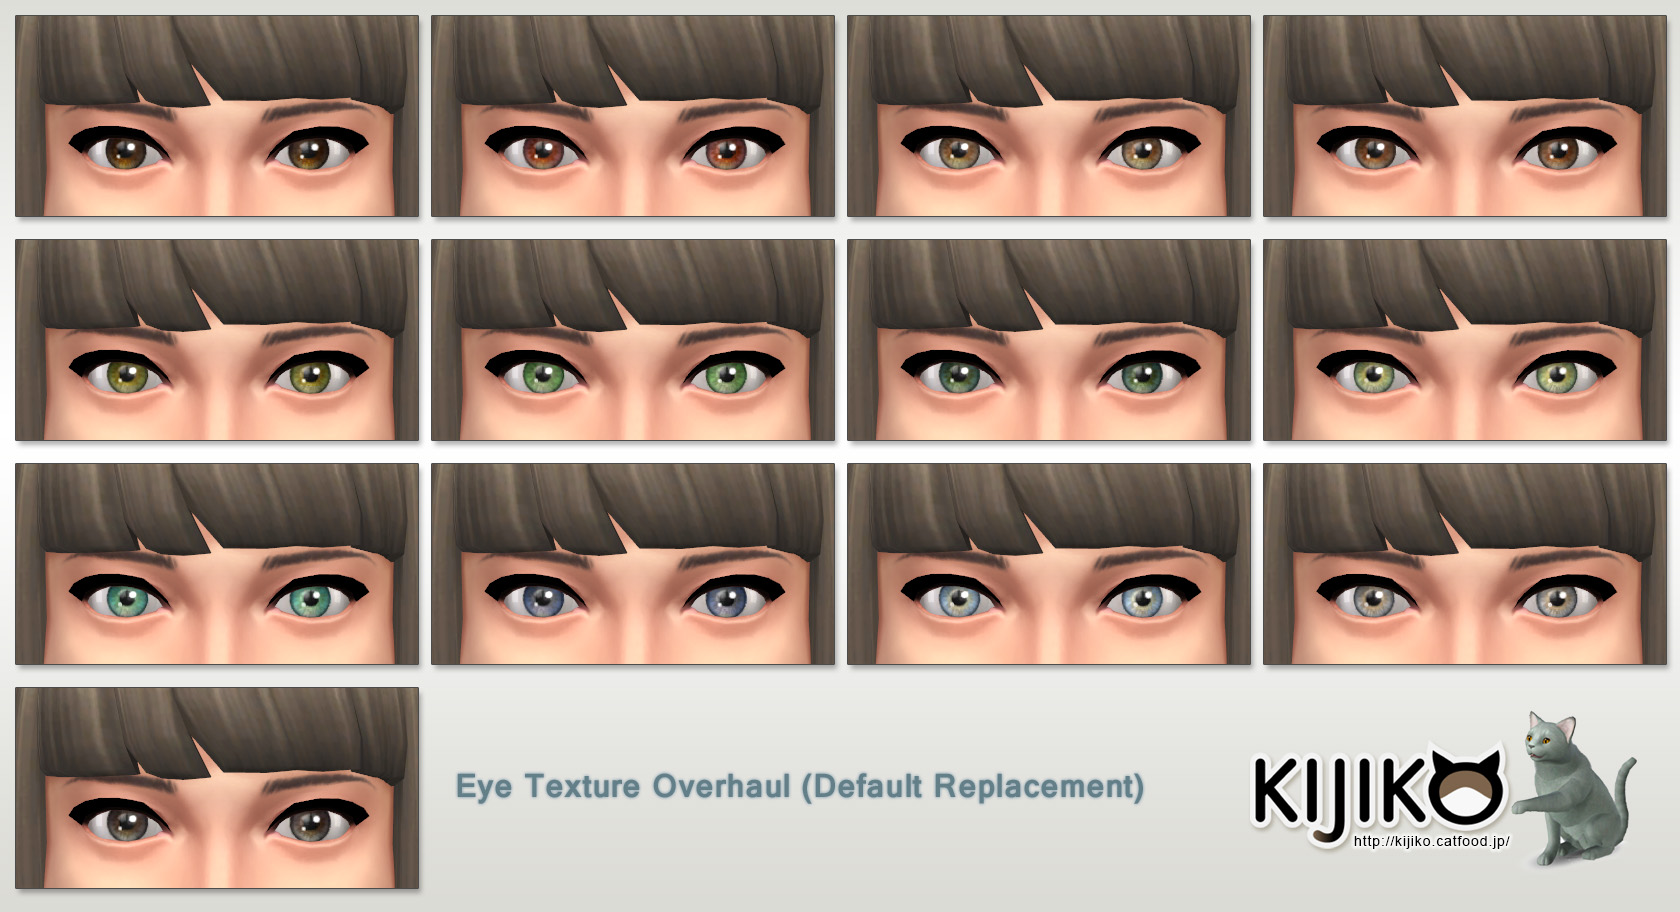 Eye Texture Overhaul at Kijiko